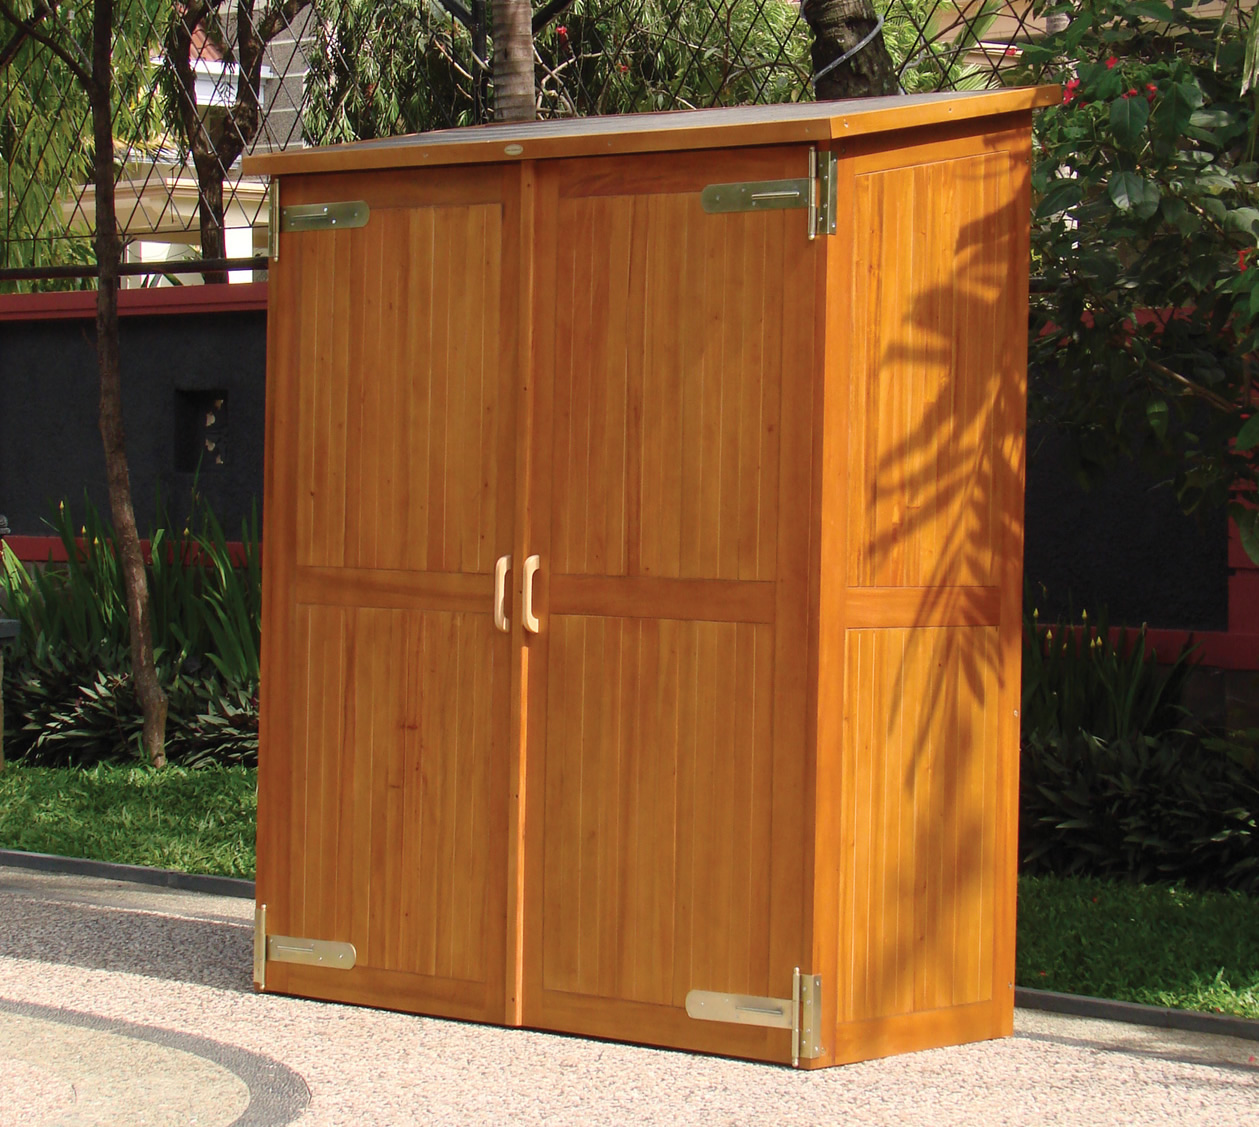 garden storage magnificent outdoor storage waterproof garden cabinet.jpg outdoor full  version ... YGLSFES